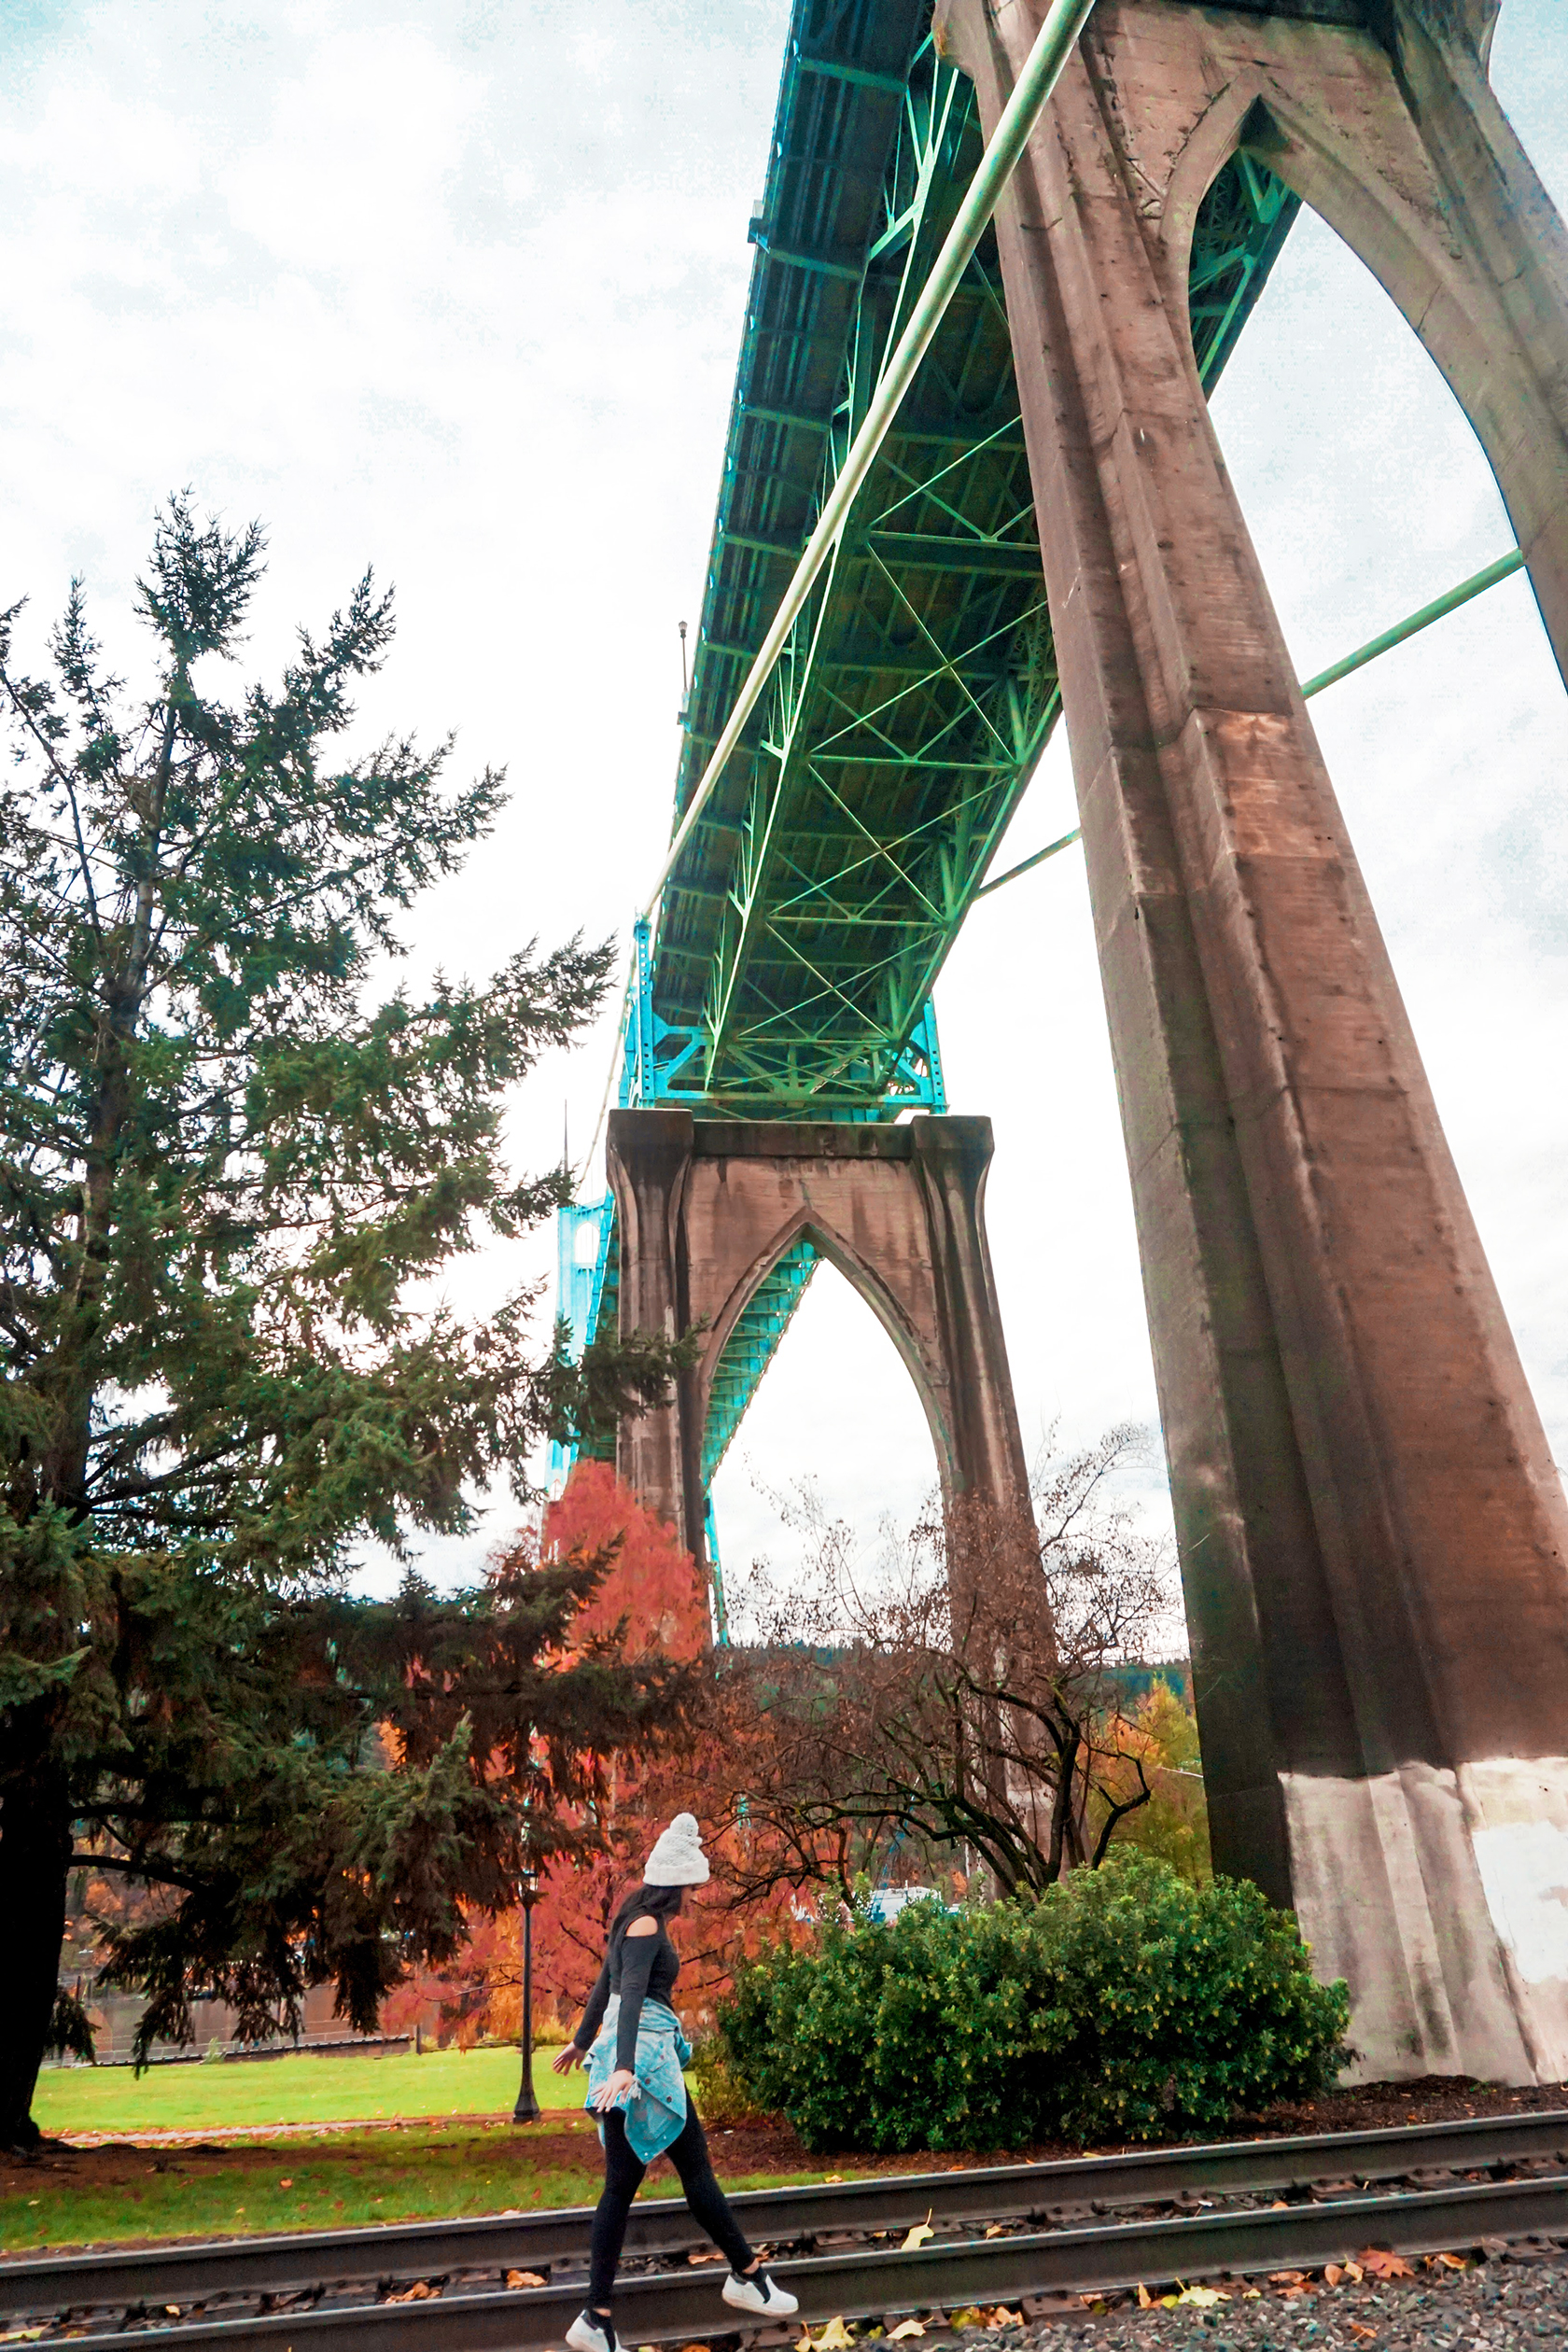 Walk along the tracks and under the bridge at Cathedral Park, located all the way North in Portland, just across the river from Vancouver, Washington.